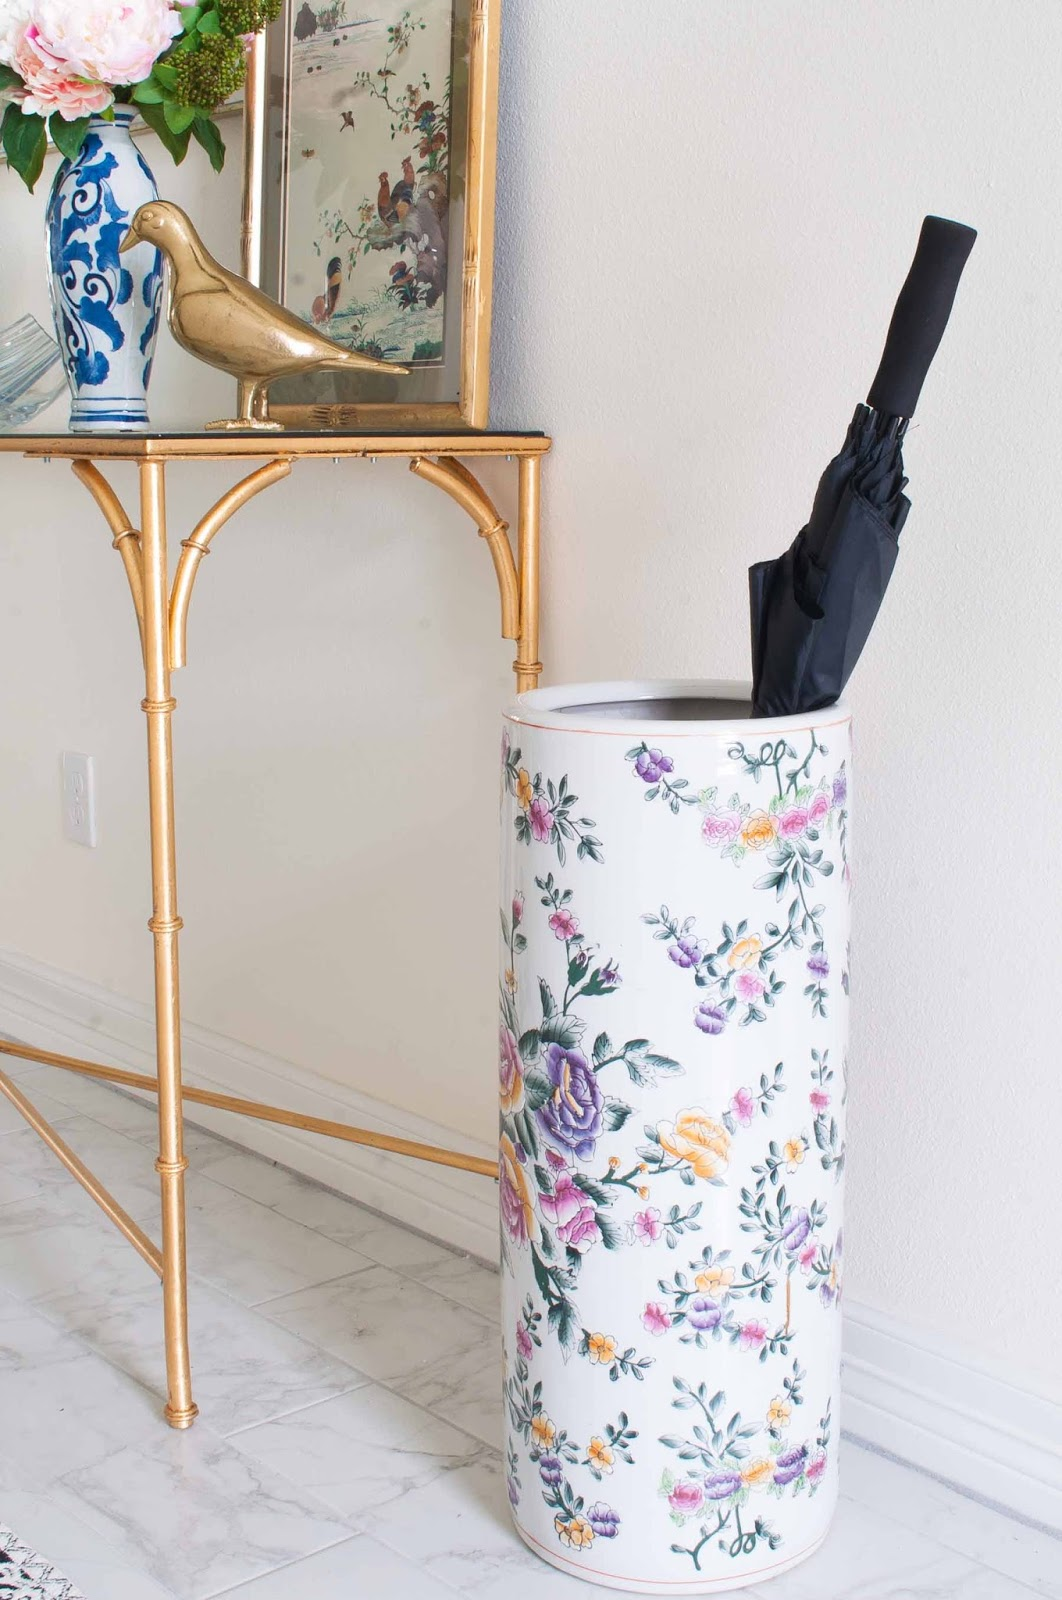 A colorful vintage floral umbrella stand next to a gold console table in a foyer.